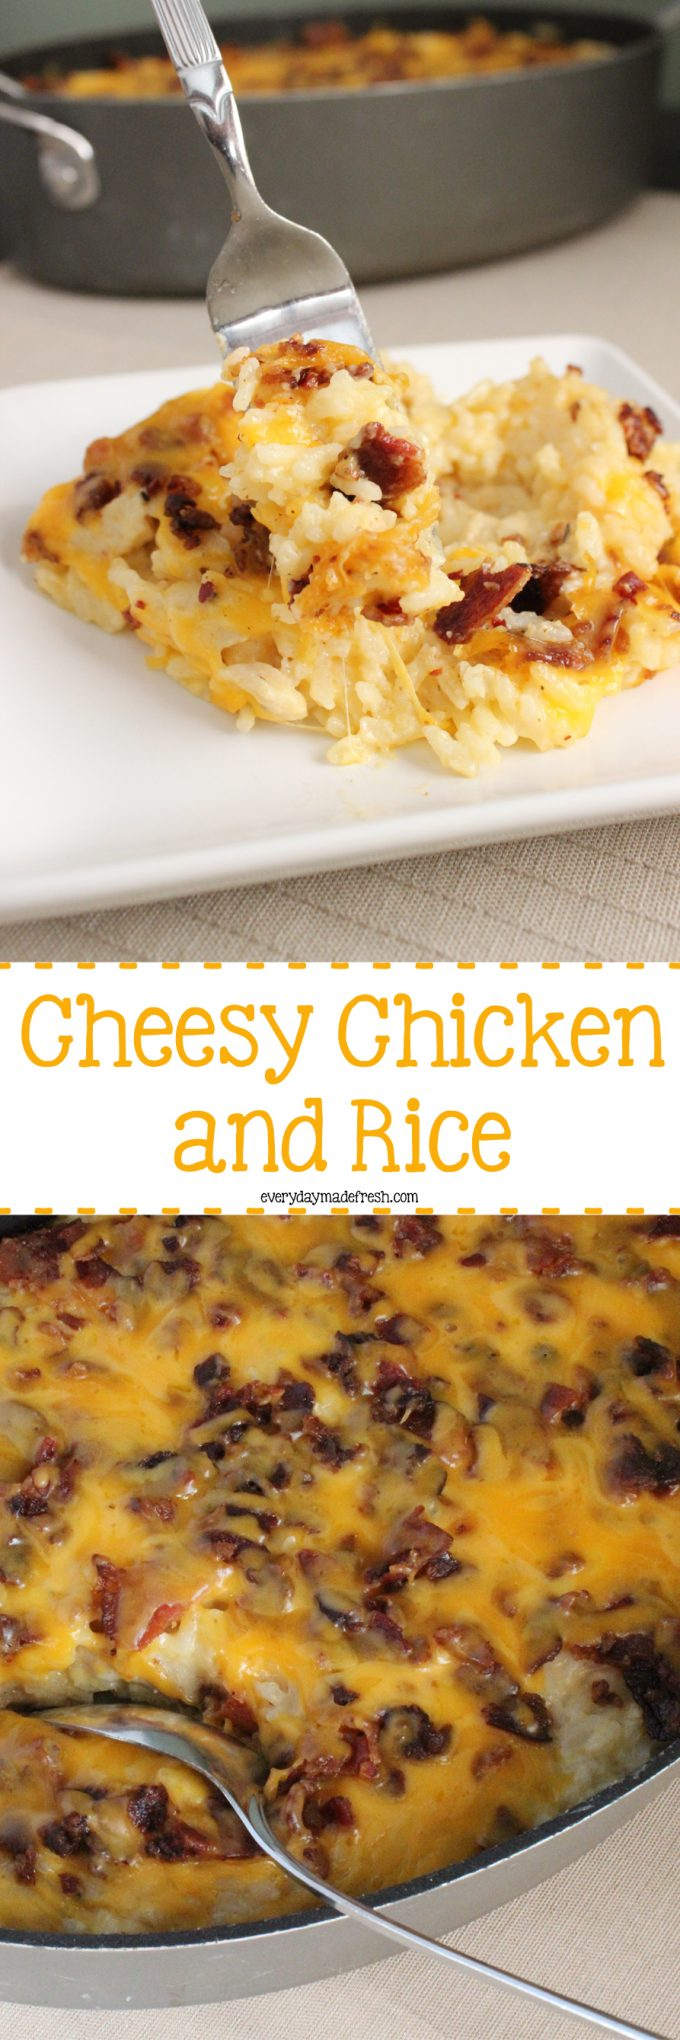 Crispy bacon, a cheesy sauce, chunks of chicken - this Cheesy Chicken and Rice Casserole is the ultimate in comfort food! | EverydayMadeFresh.com